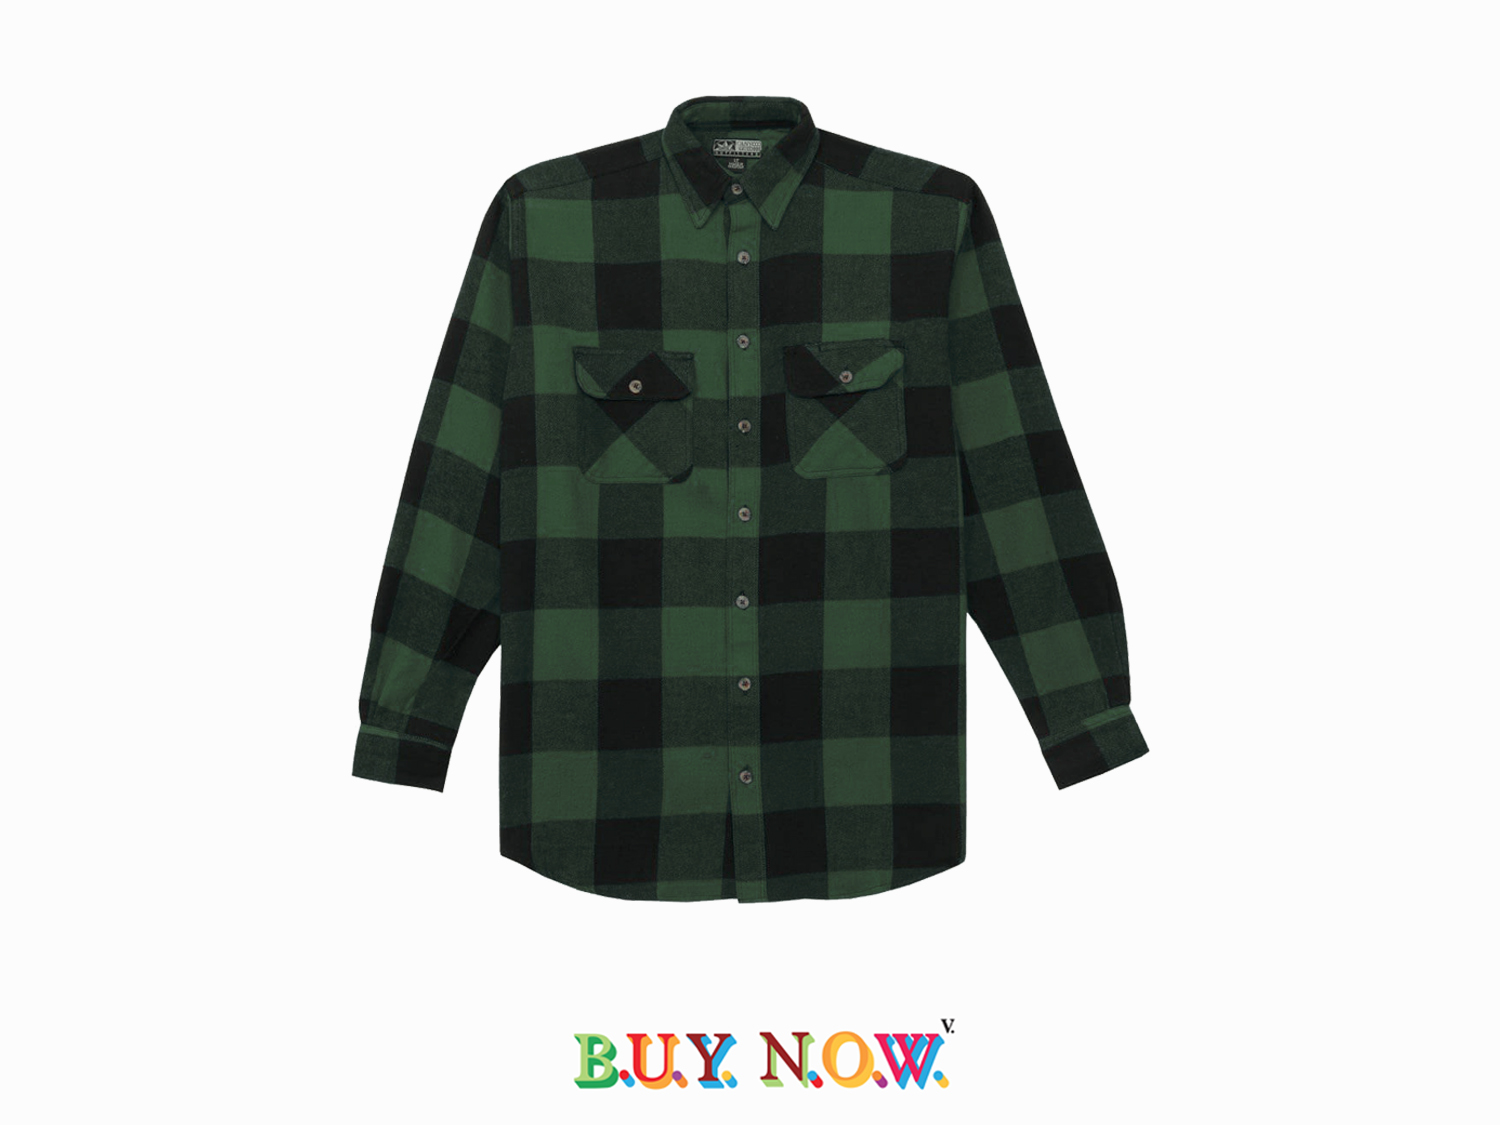 greencheckeredflannelcover.jpg